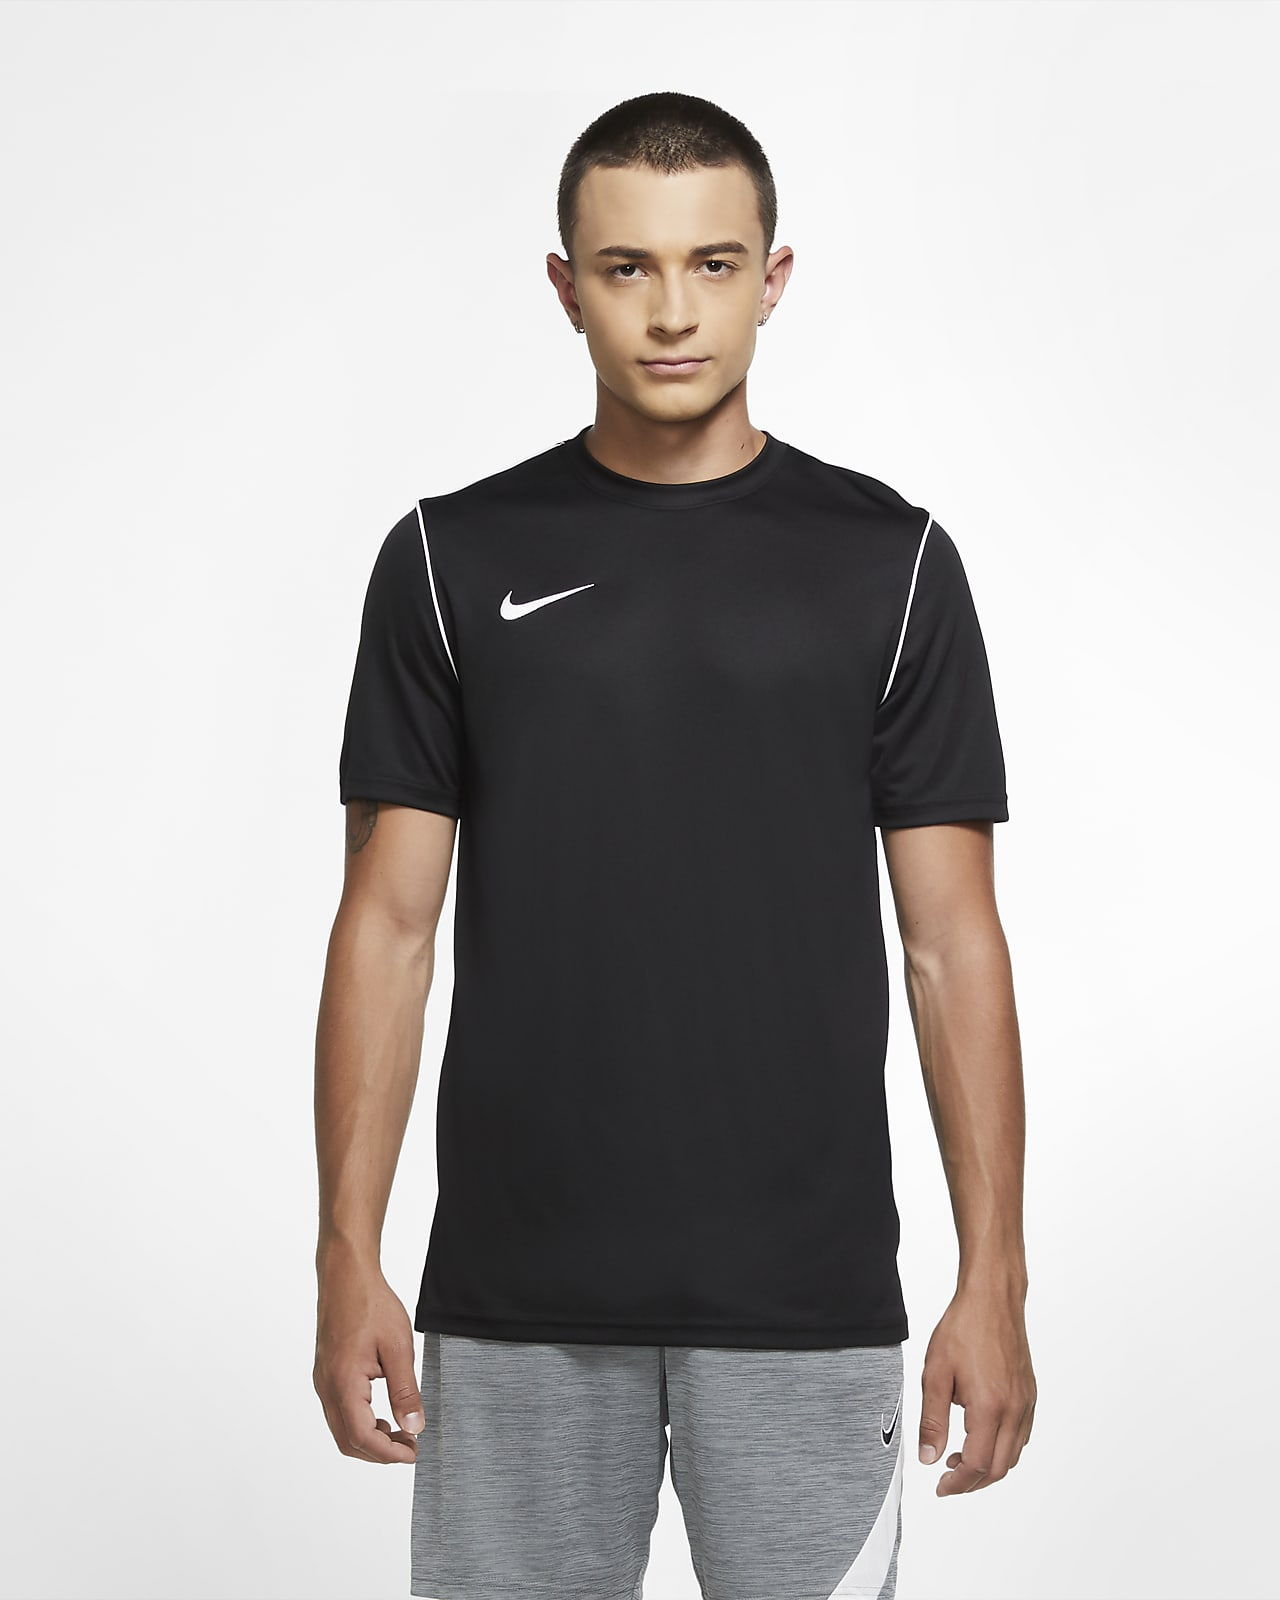 Nike Dri-FIT Men's Short-Sleeve Football Top